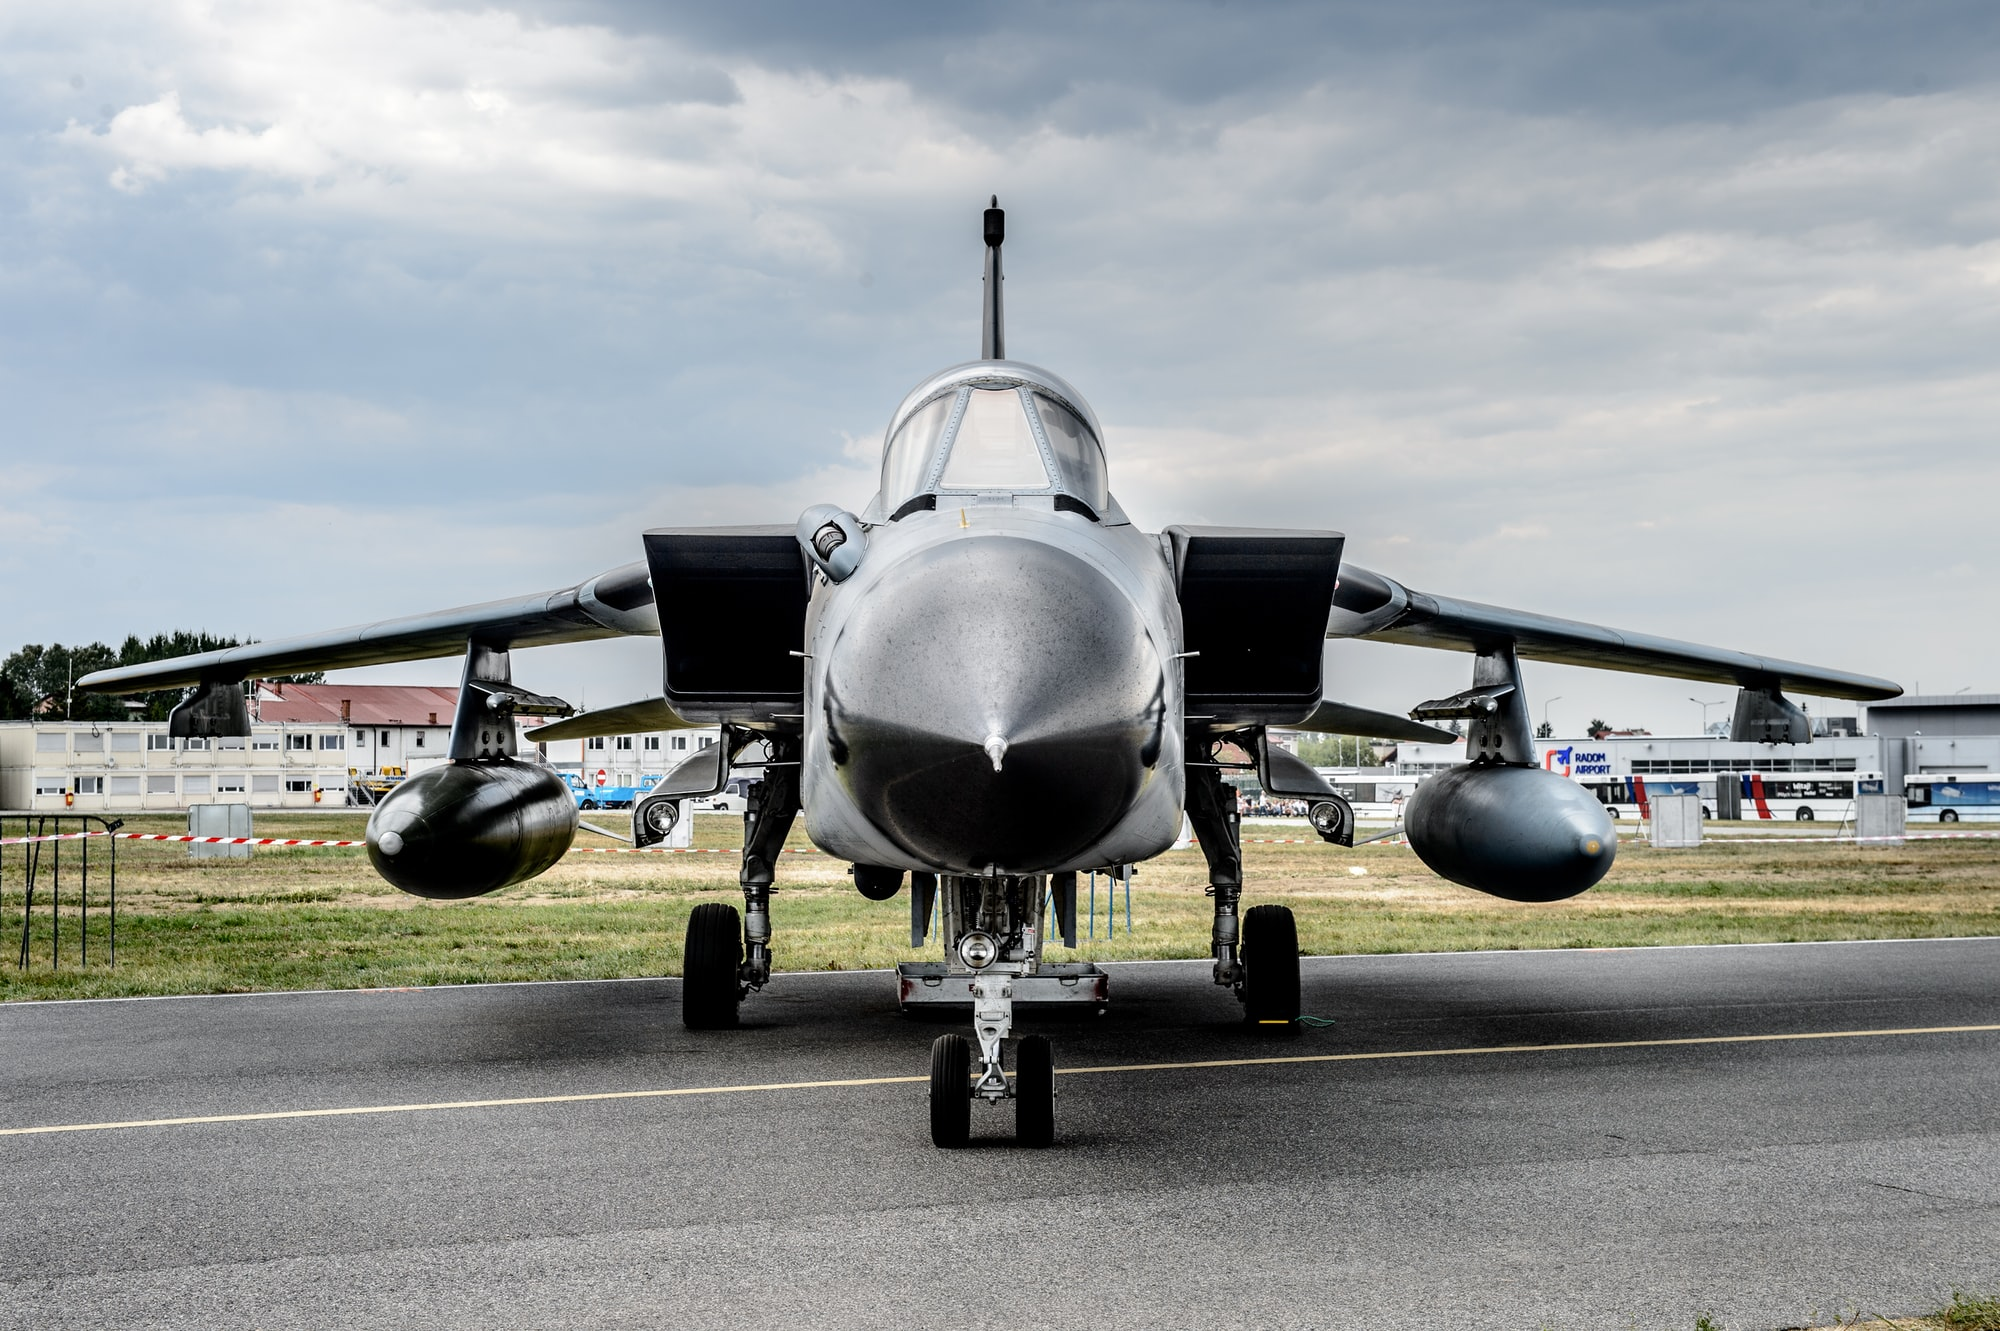 Israeli innovation adapts fighter jet tech to prevent car accidents